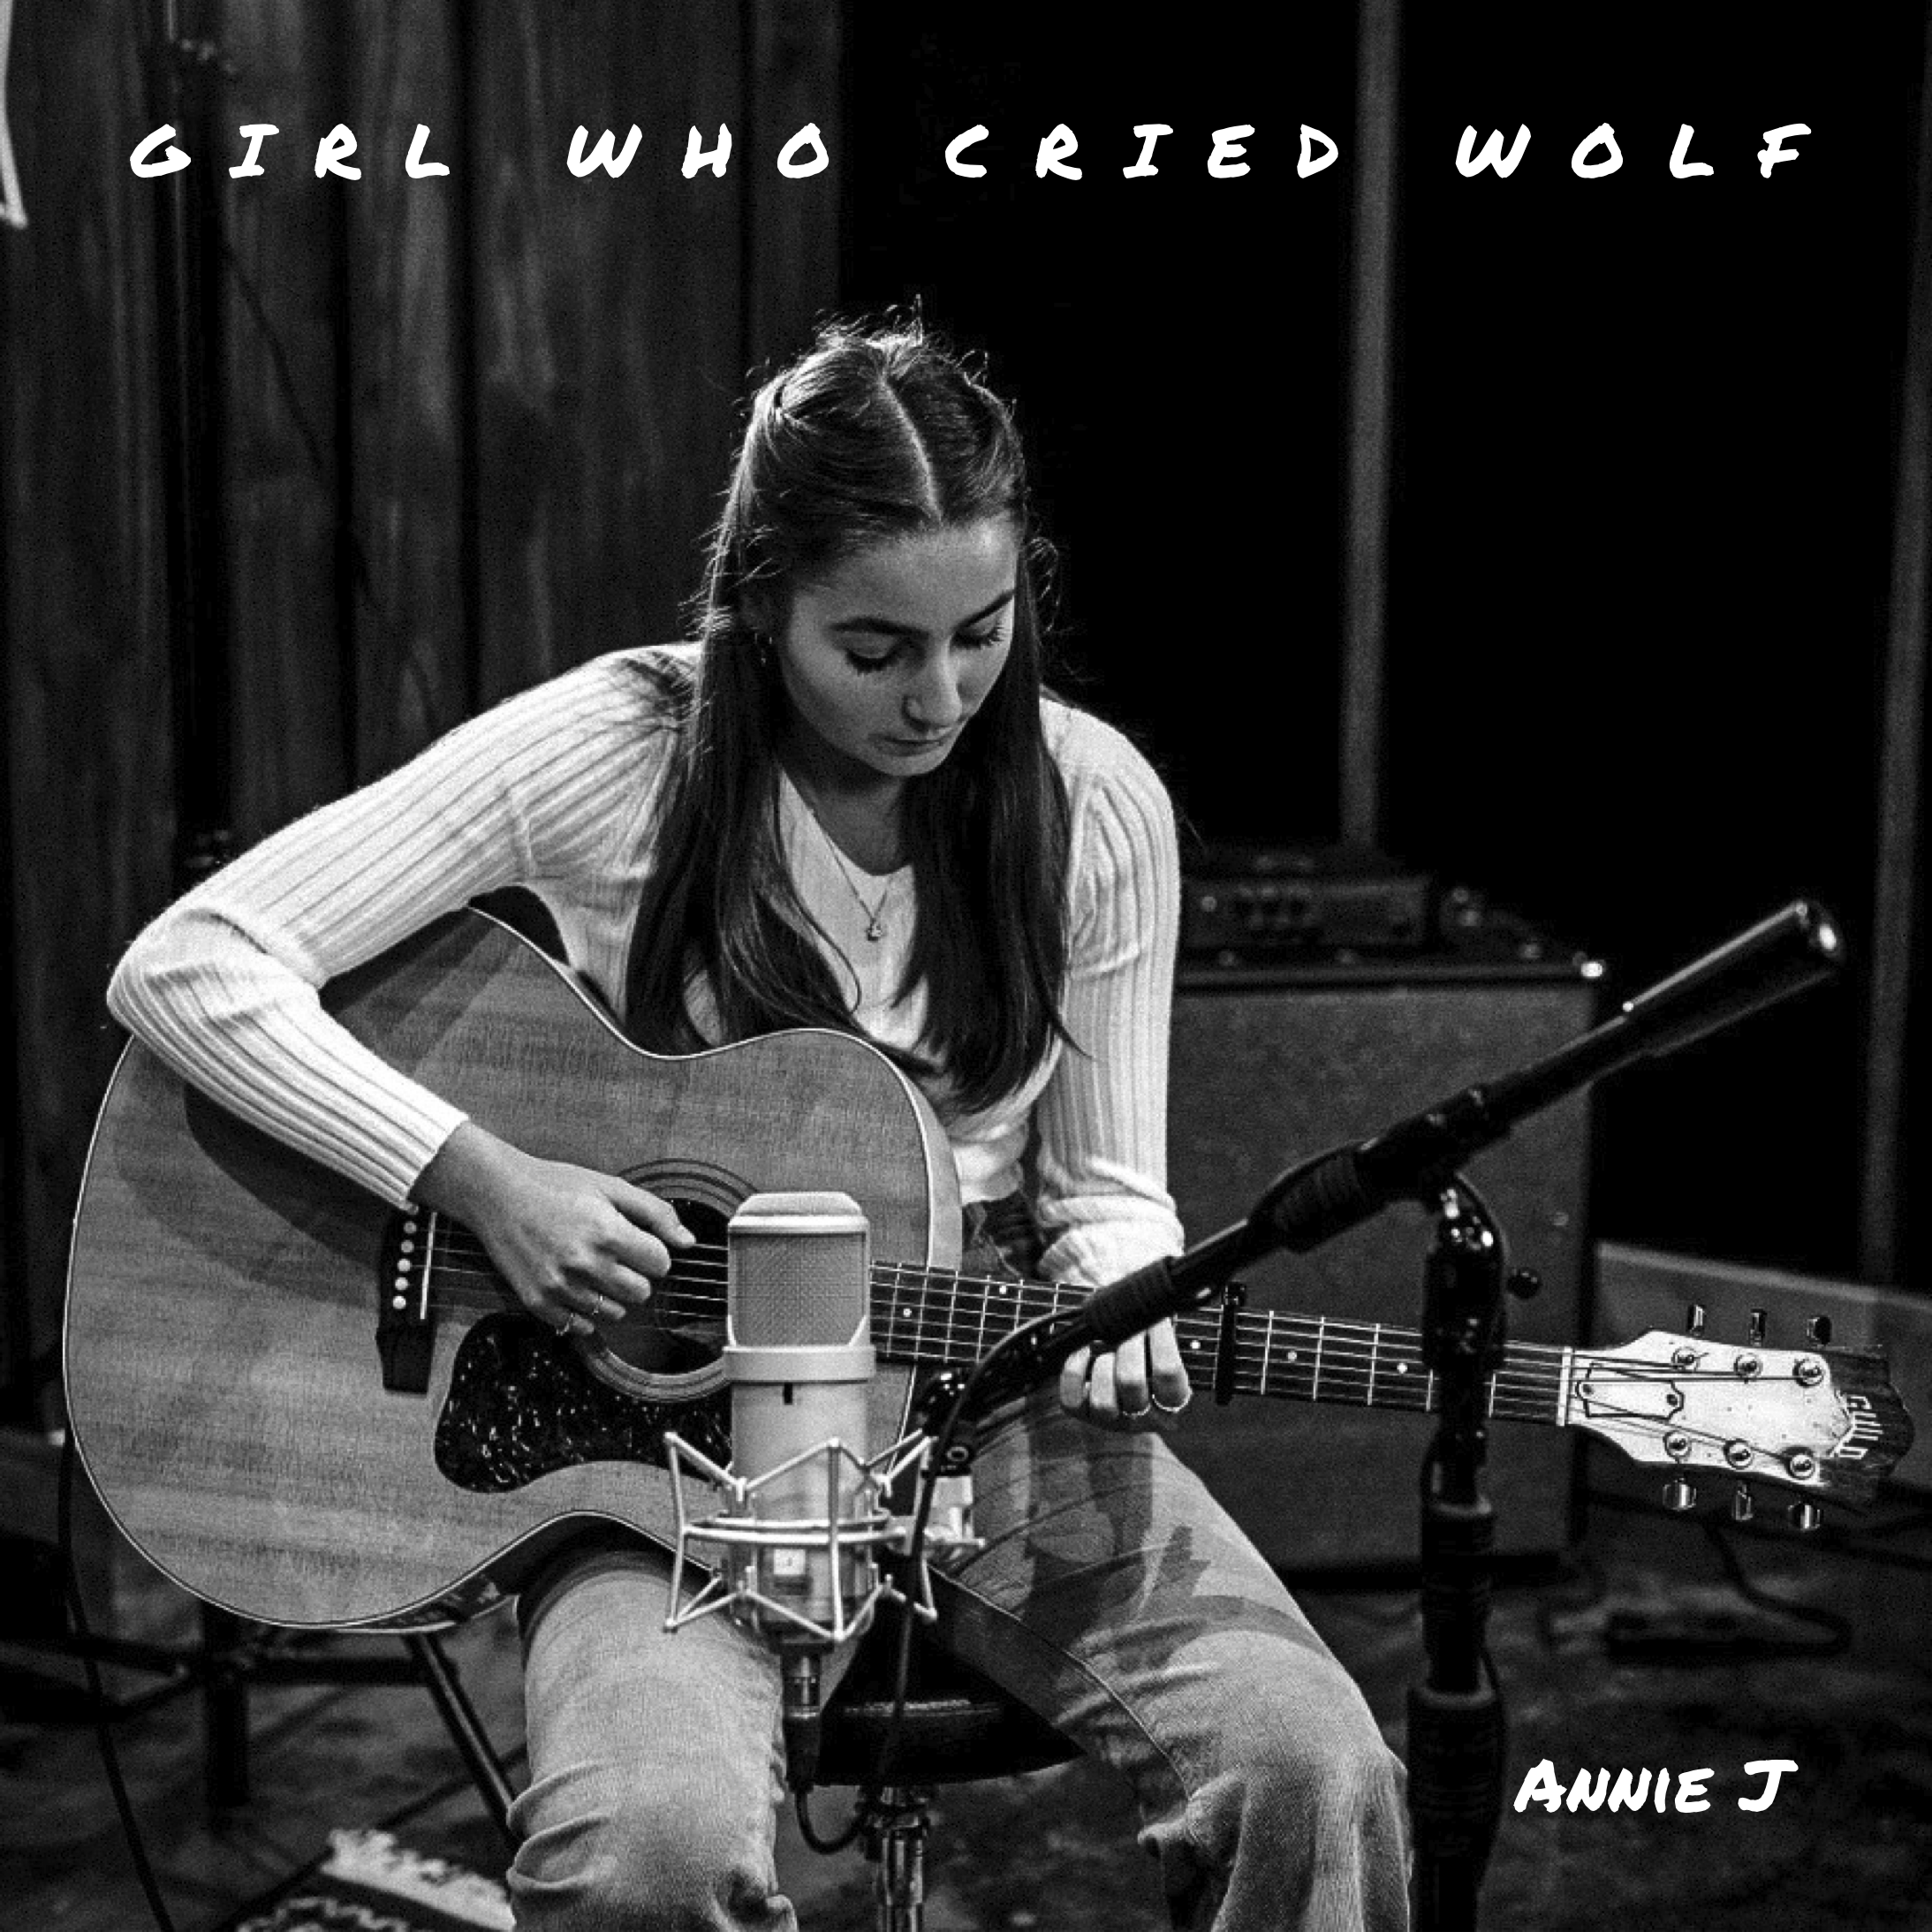 Up-and-coming Songwriter and Singer Annie J Shakes Things Up in The World of Pop with Her Timely, Powerful and Pertinent New Release